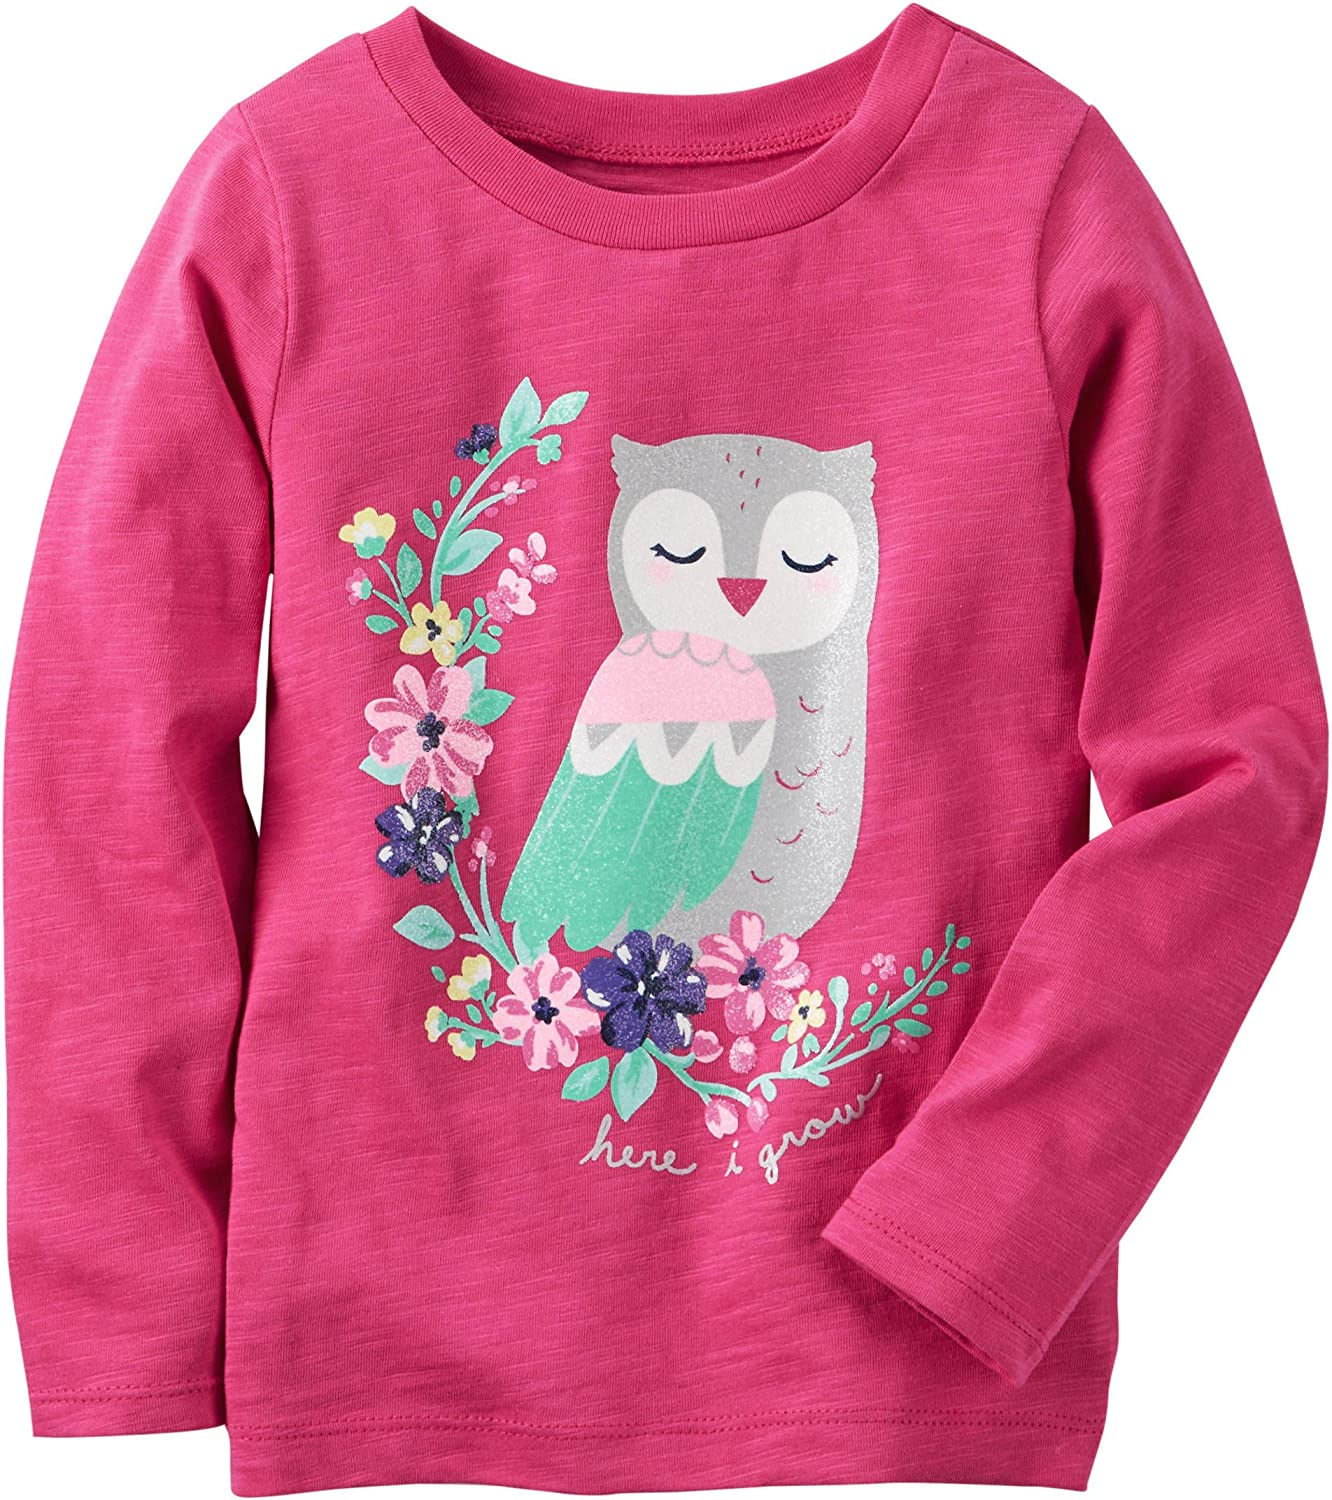 Carters Toddler Girls Here I Grow Owl T-Shirt 4T Bright pink